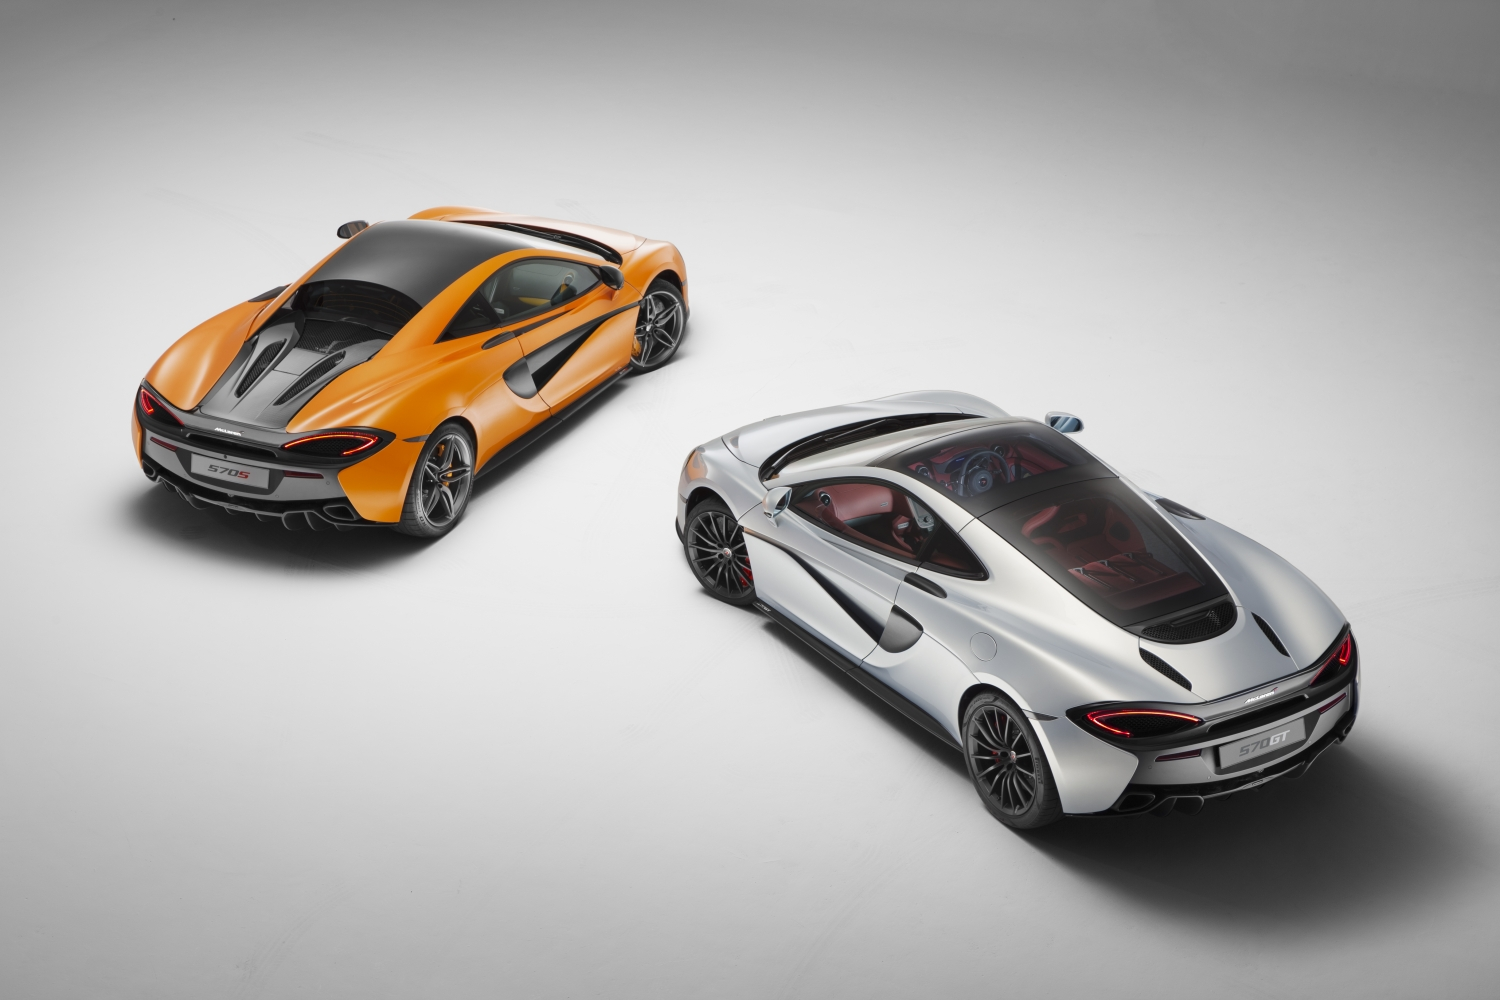 Mclaren To Launch 14 New Models In The Next 5 Years